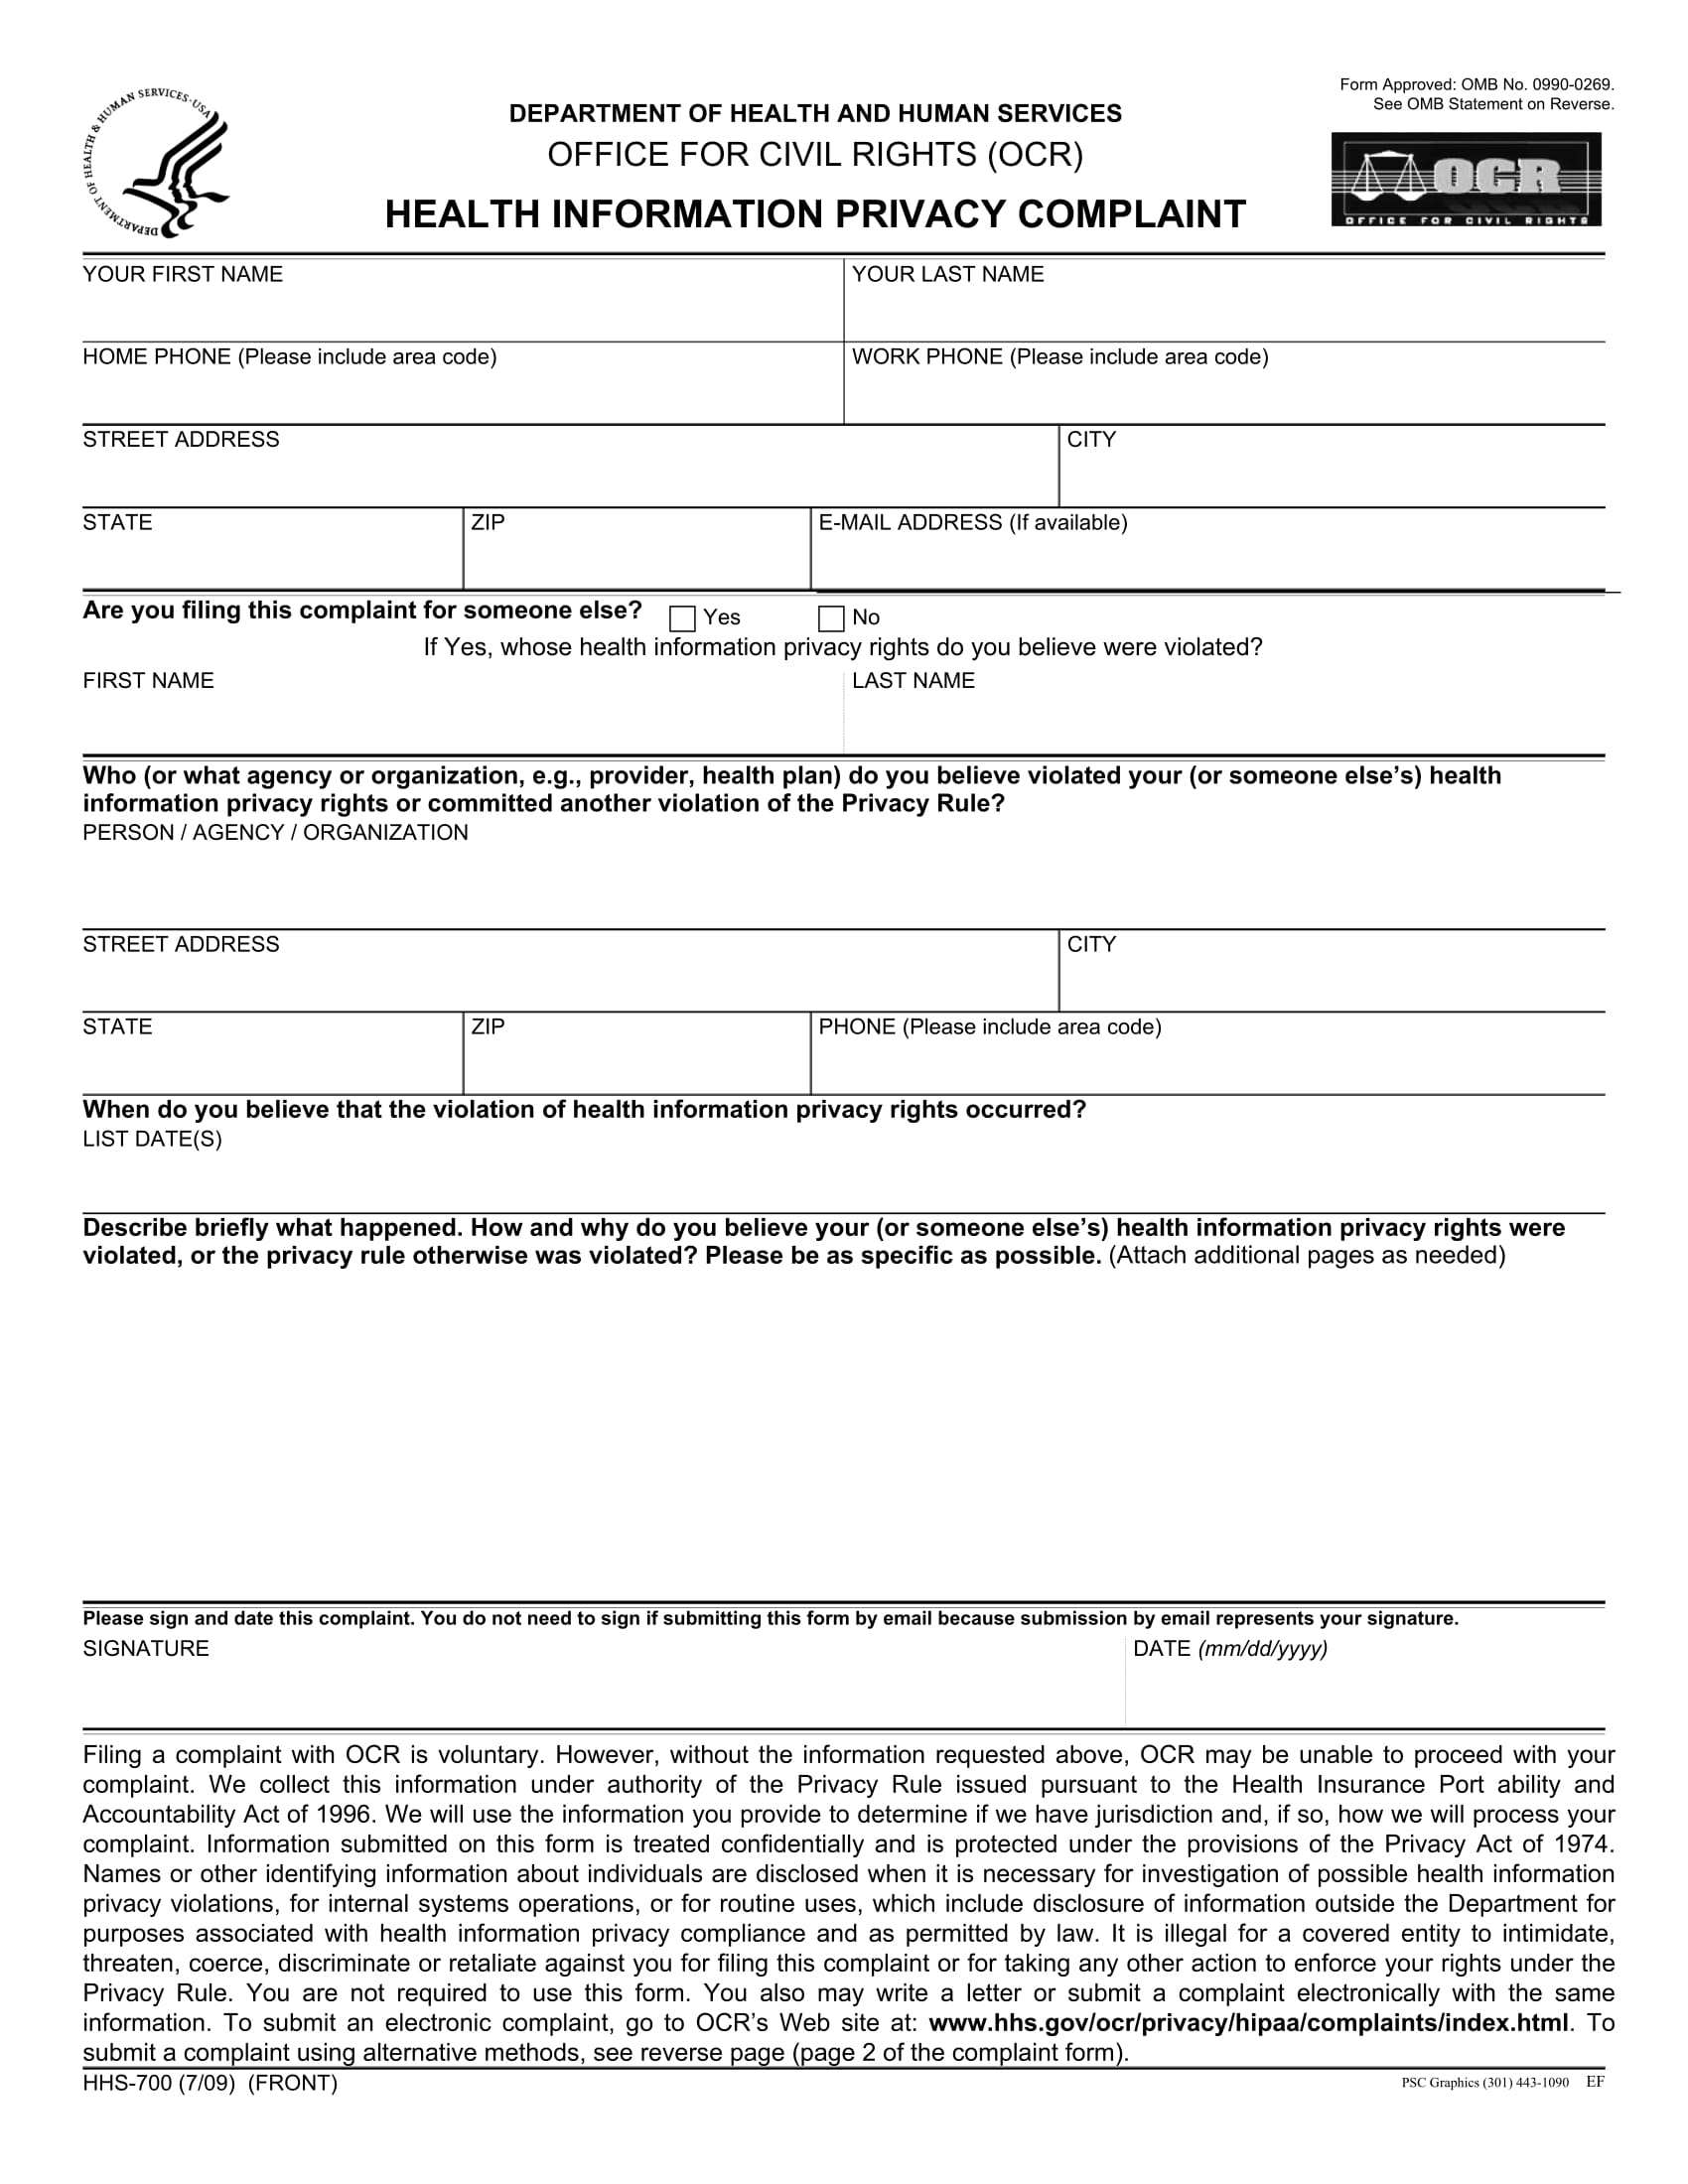 health information privacy complaint form 1